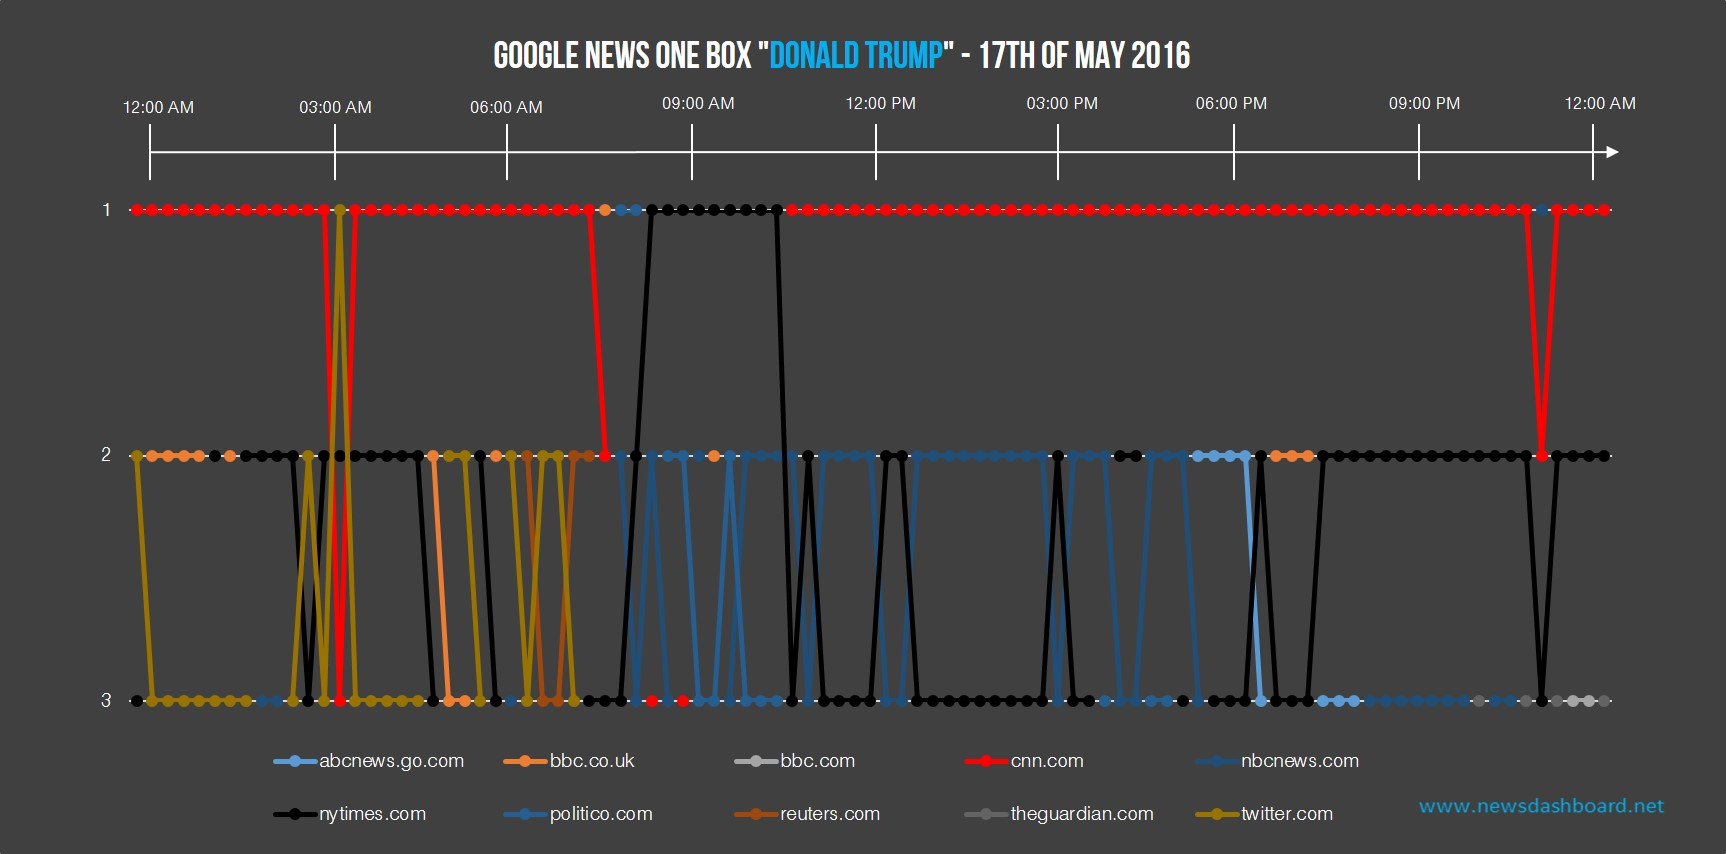 nytimes.com and nbcnews.com were also successful in the Google News Box.